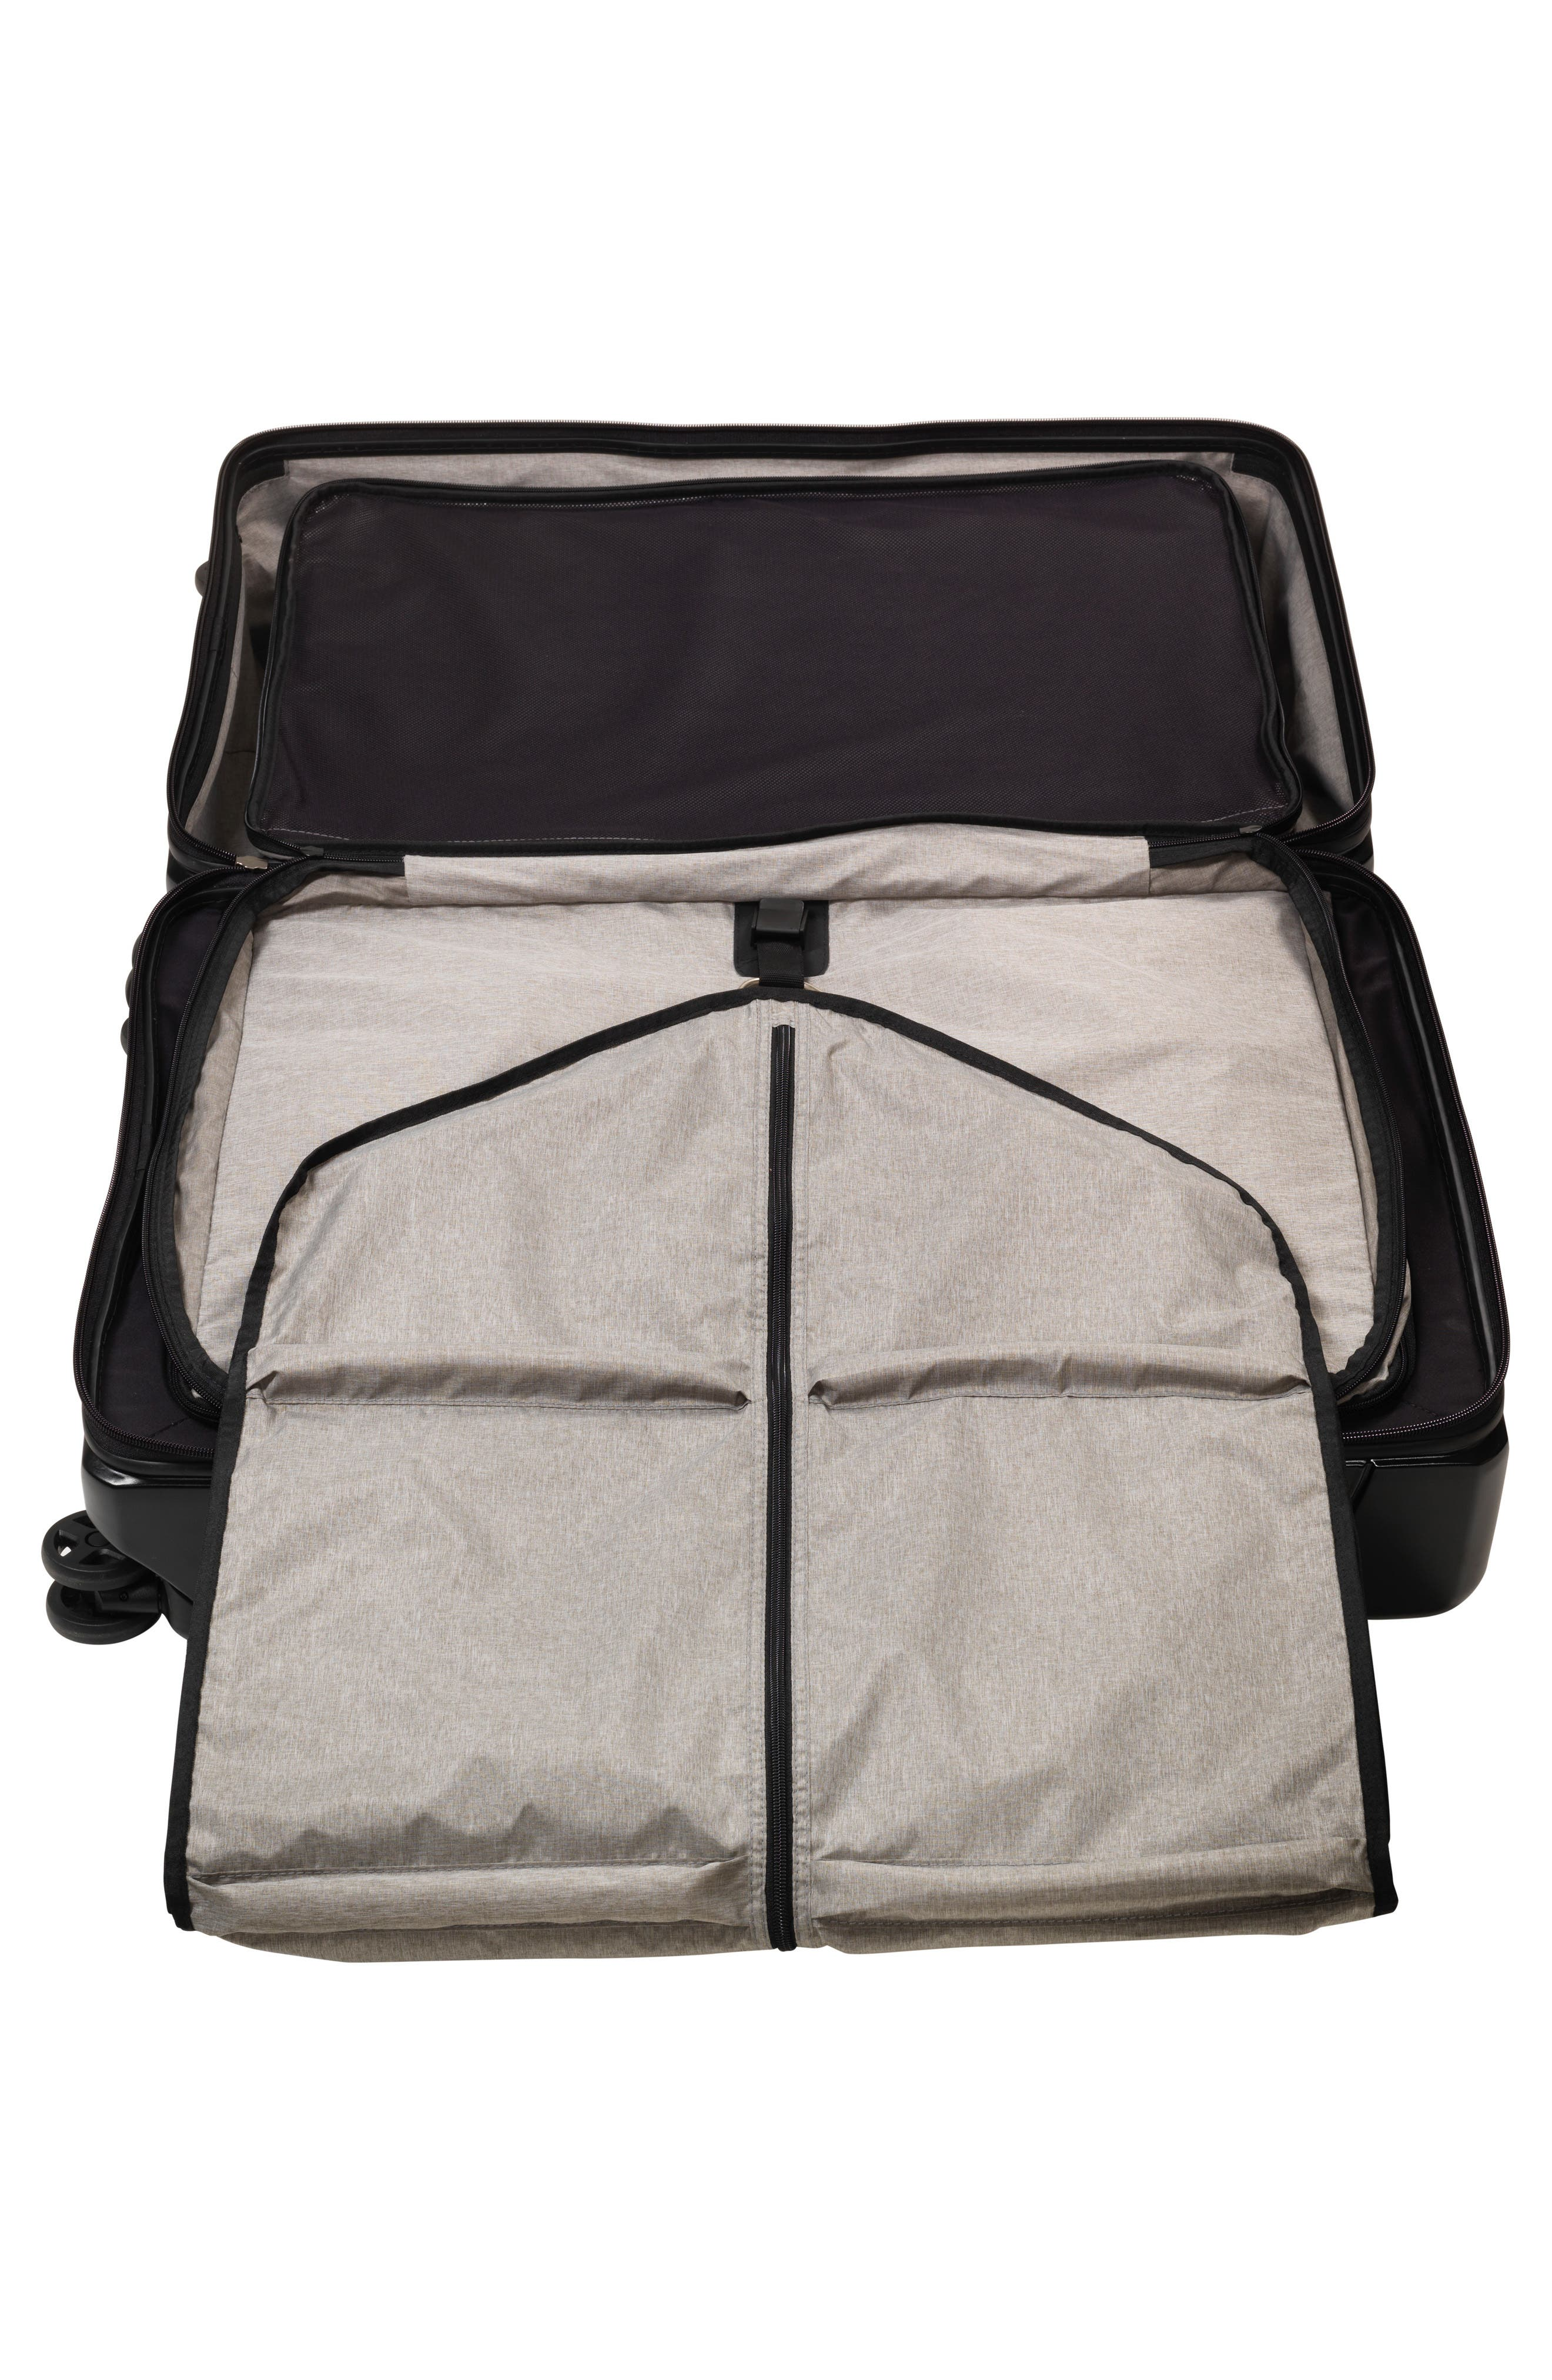 Lexicon Frequent Flyer 29-Inch Wheeled Suitcase,                             Alternate thumbnail 2, color,                             001